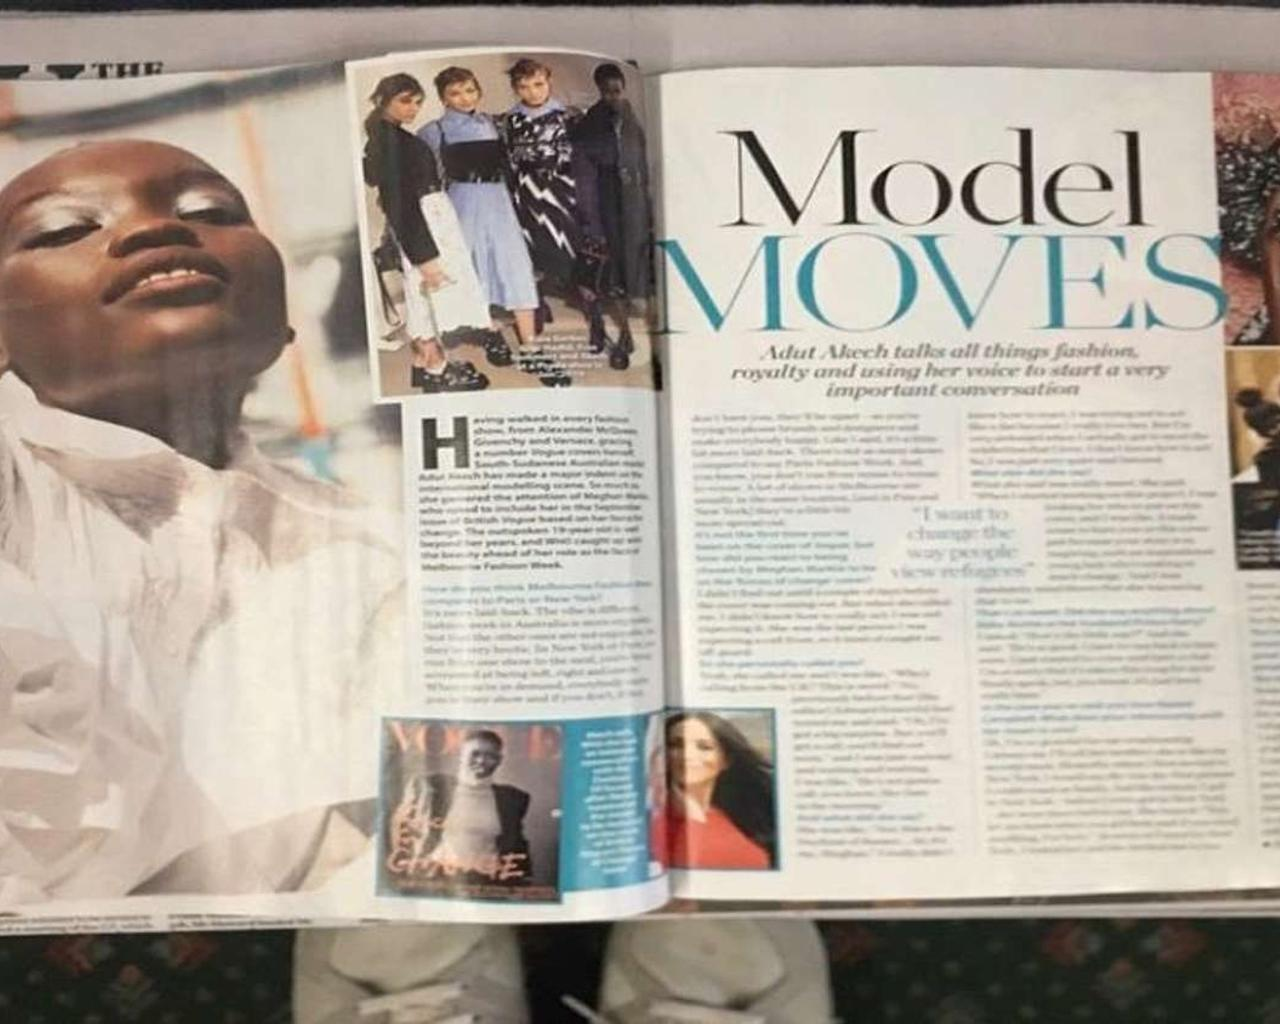 Magazine Features Image of Wrong Model in Adut Akech Interview